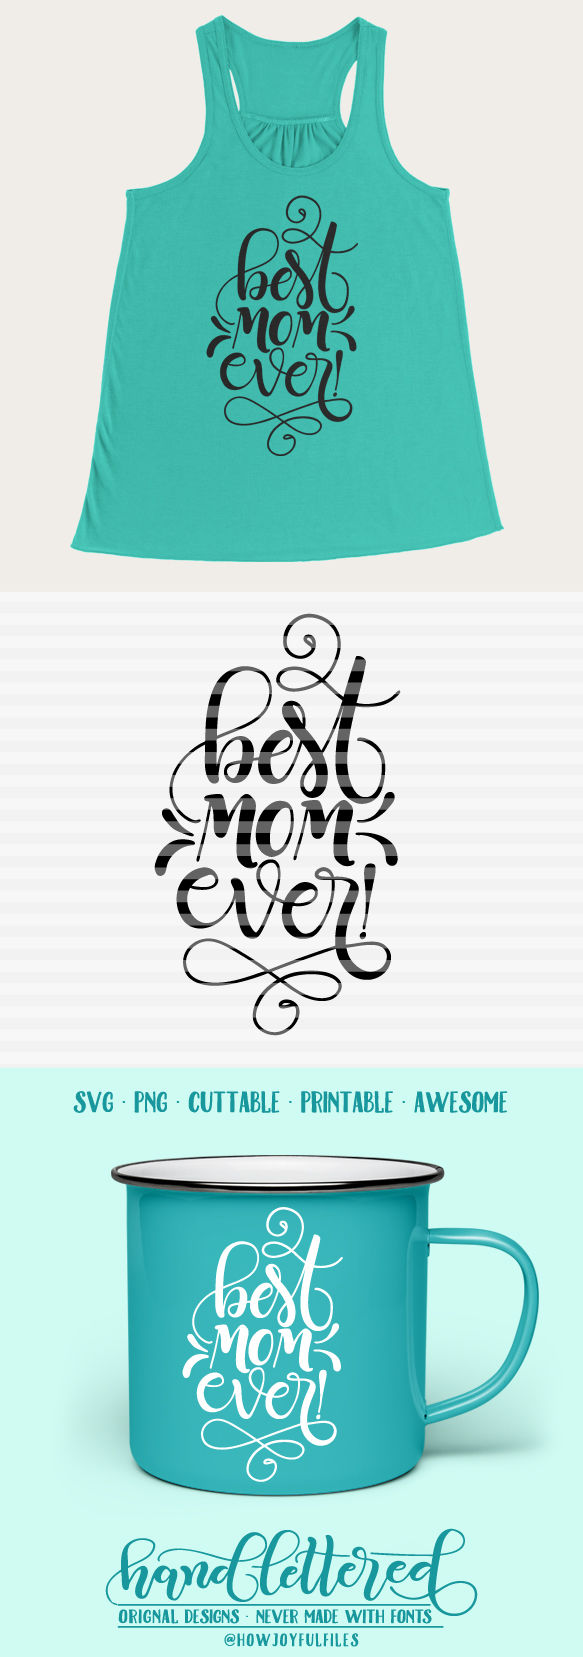 Best Mom Ever Svg Pdf Dxf Hand Drawn Lettered Cut File